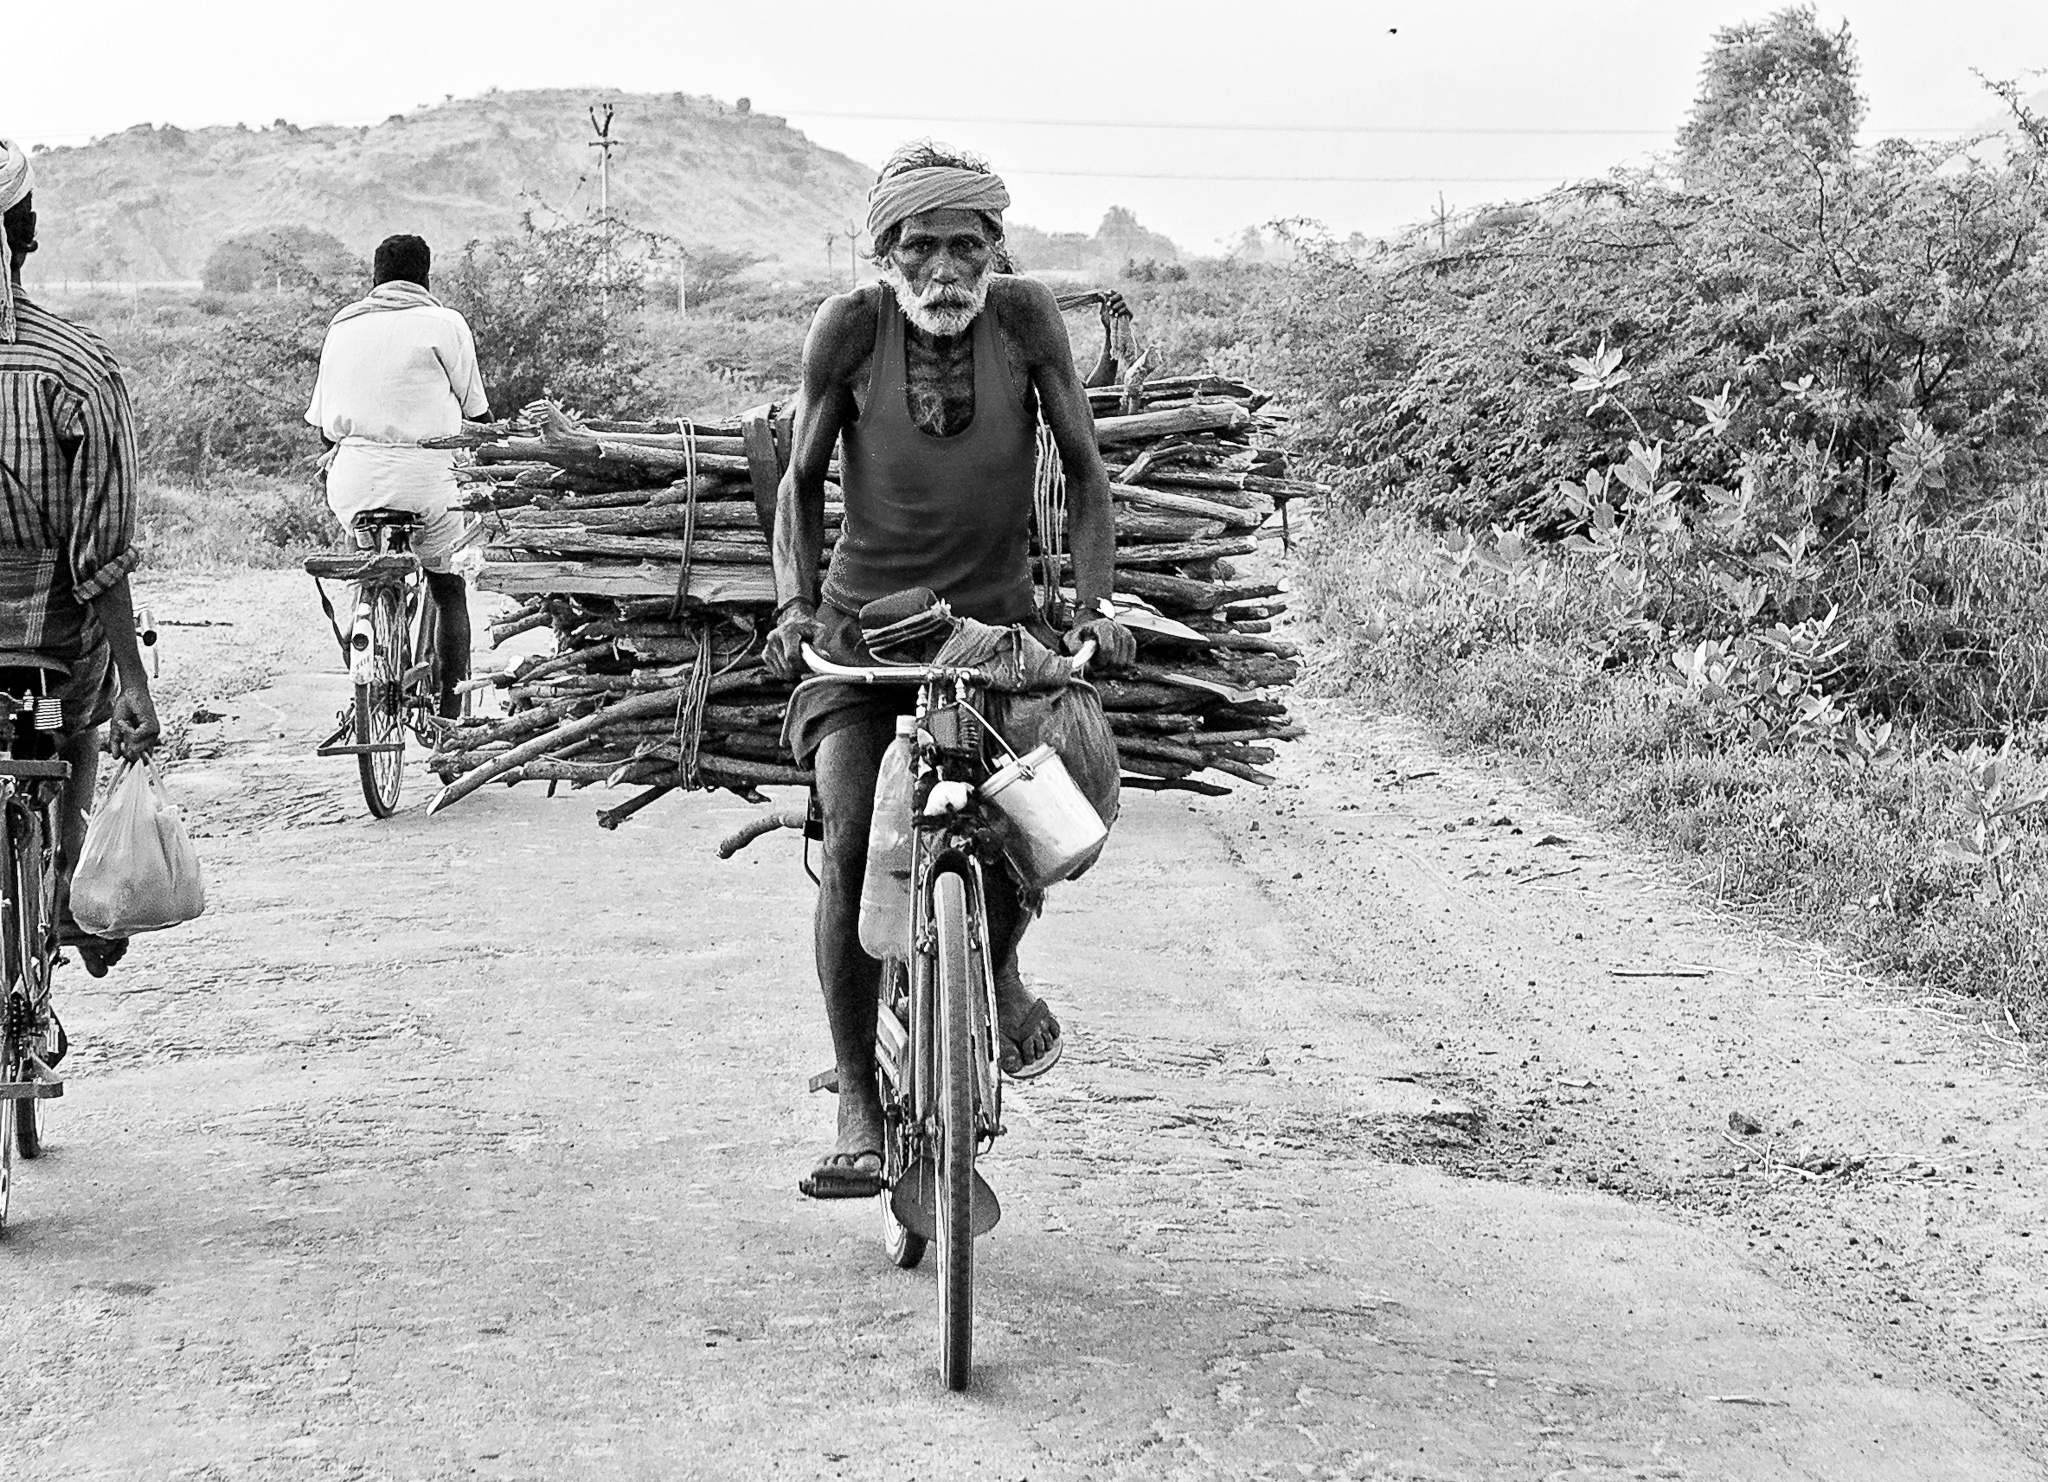 An old agricultural labourer on his way home from the field after a day's work, carrying firewood in his bicycle, T.Kallupatti, Tamil Nadu, India